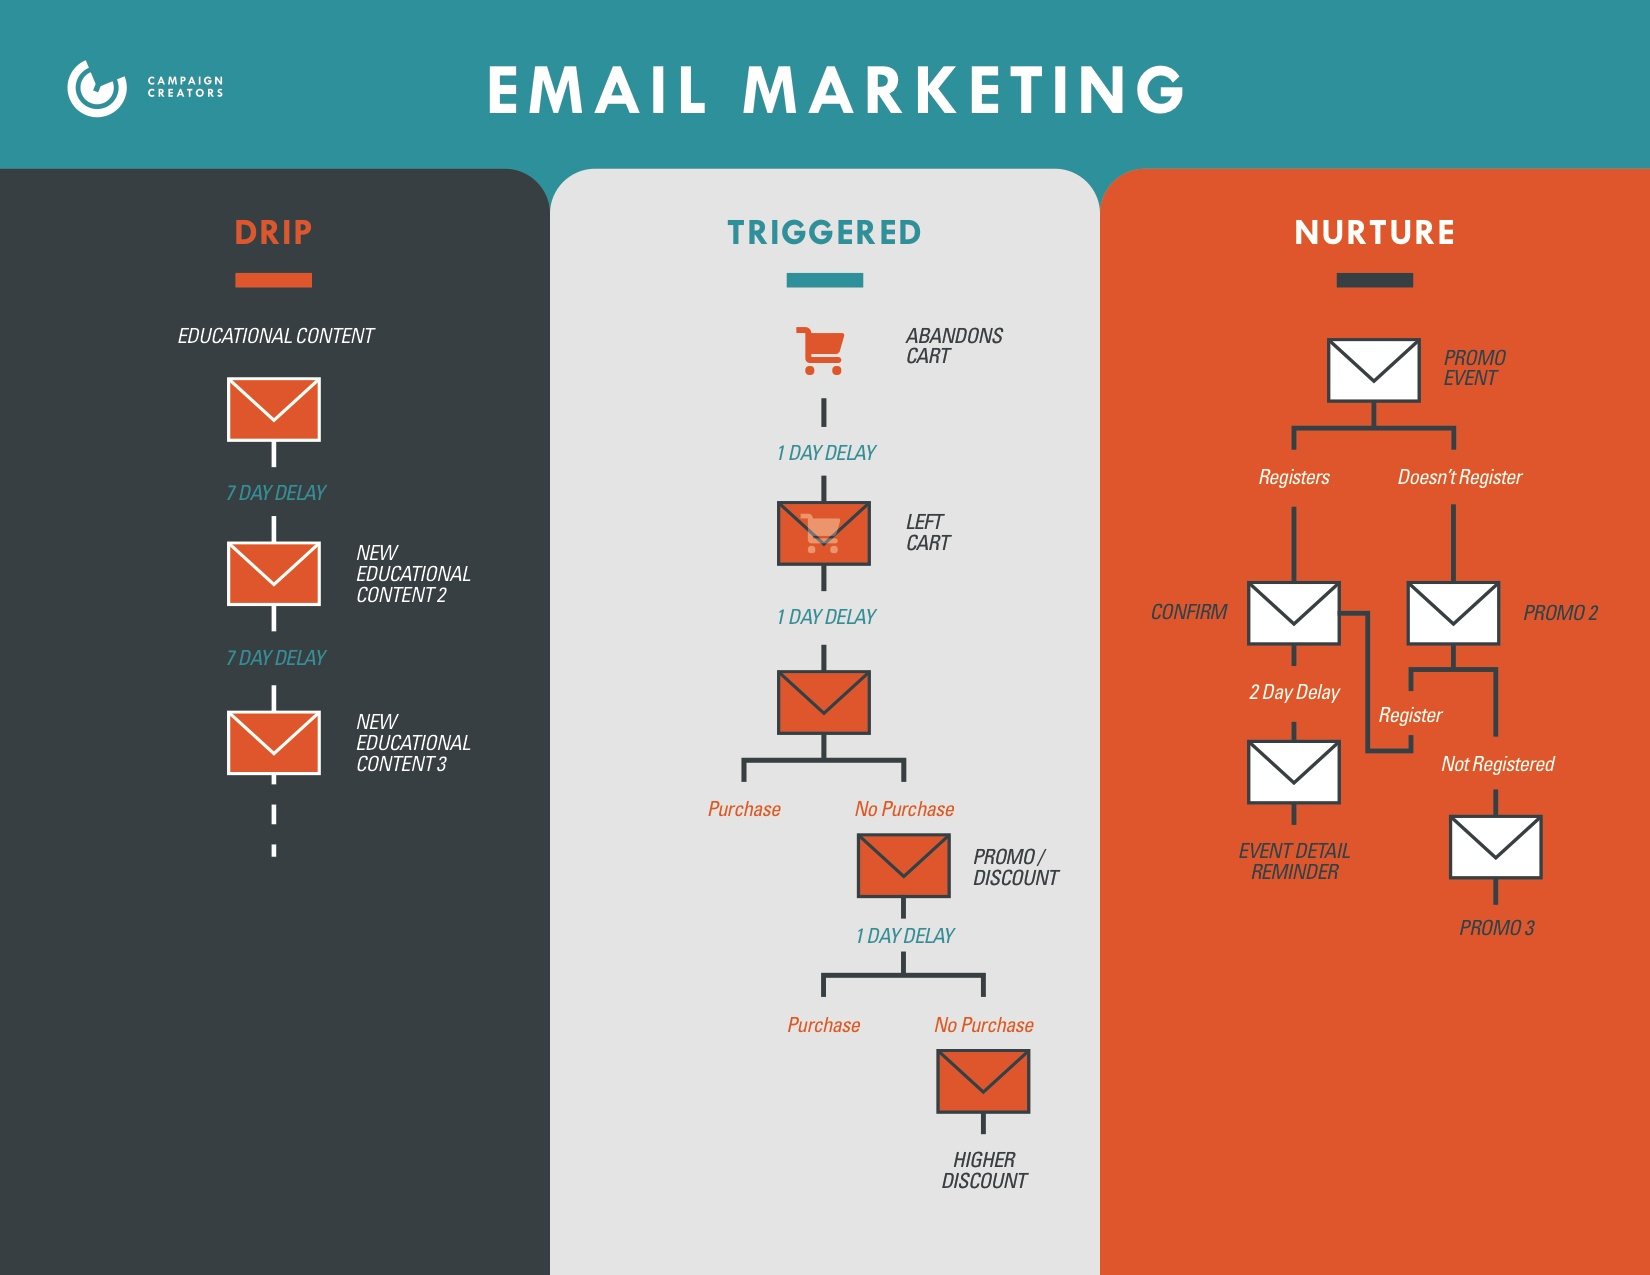 CampaignCreators-Email-Marketing-Diagram